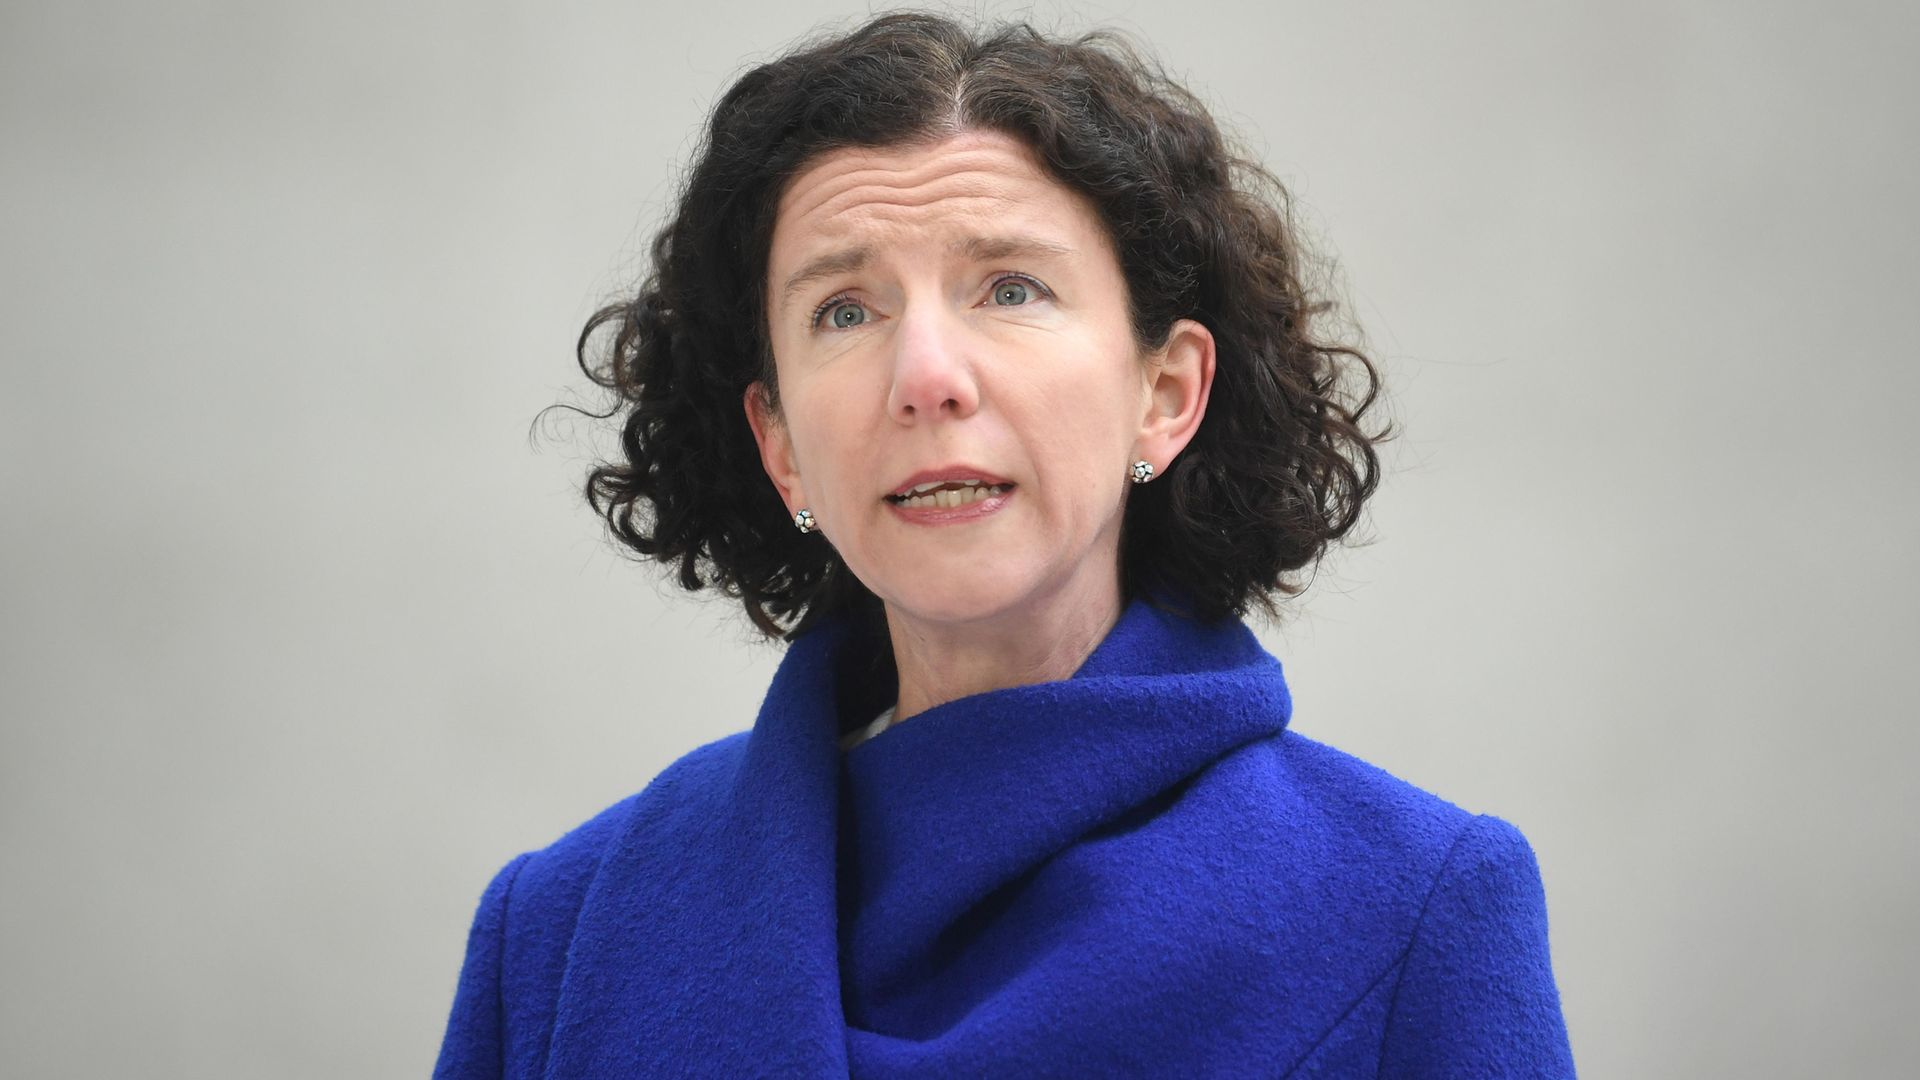 Shadow chancellor Anneliese Dodds arriving at BBC Broadcasting House in central London - Credit: PA